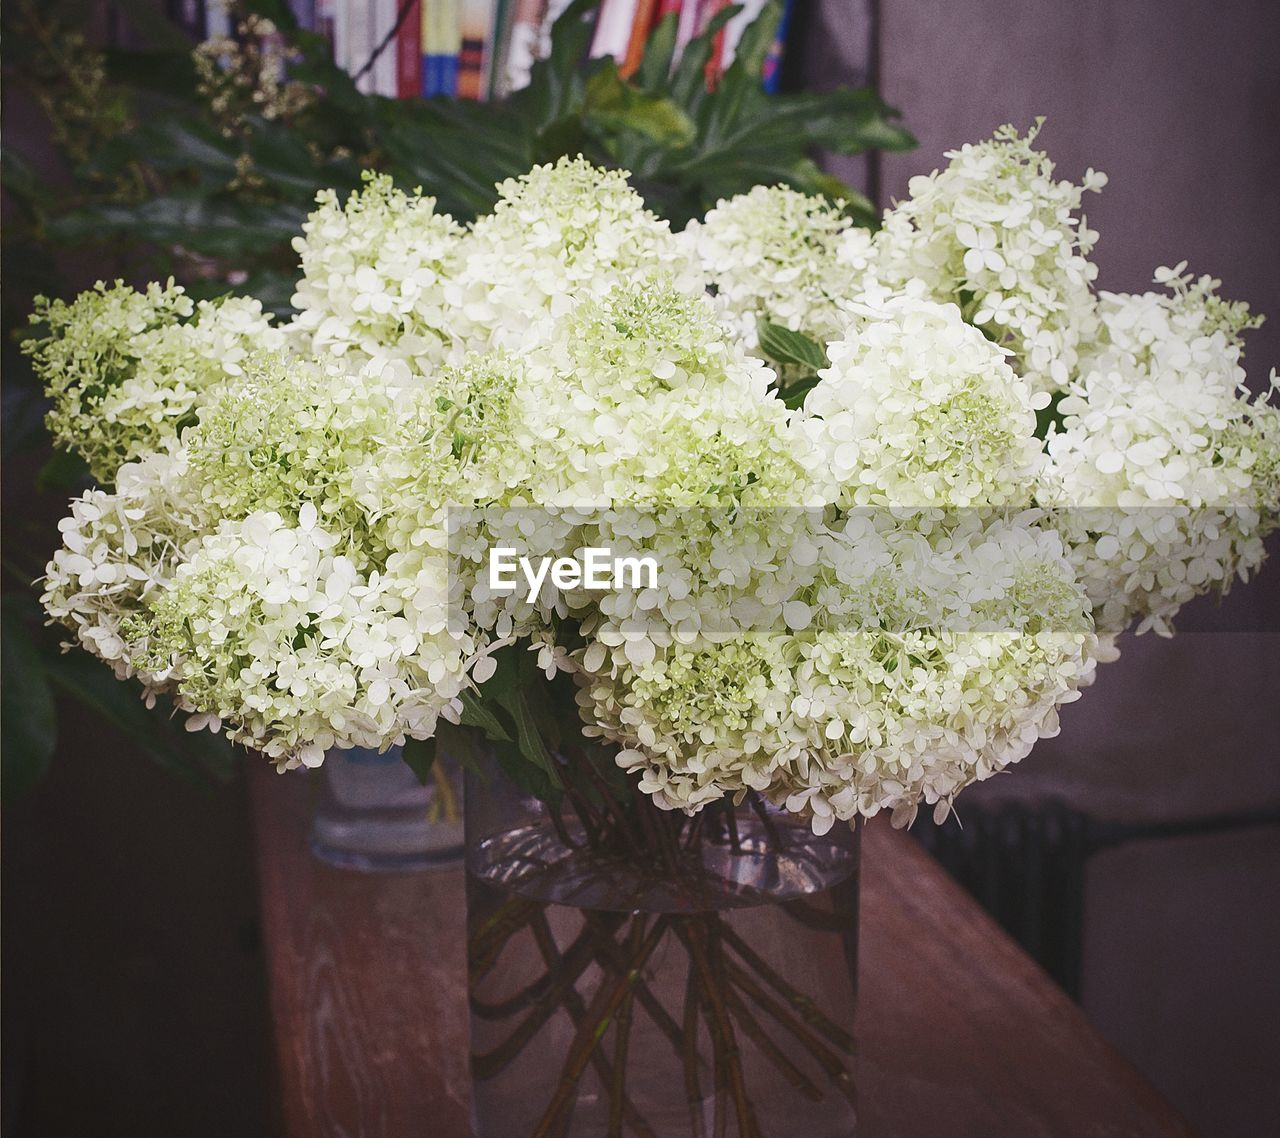 focus on foreground, flower, no people, close-up, freshness, day, outdoors, growth, nature, food